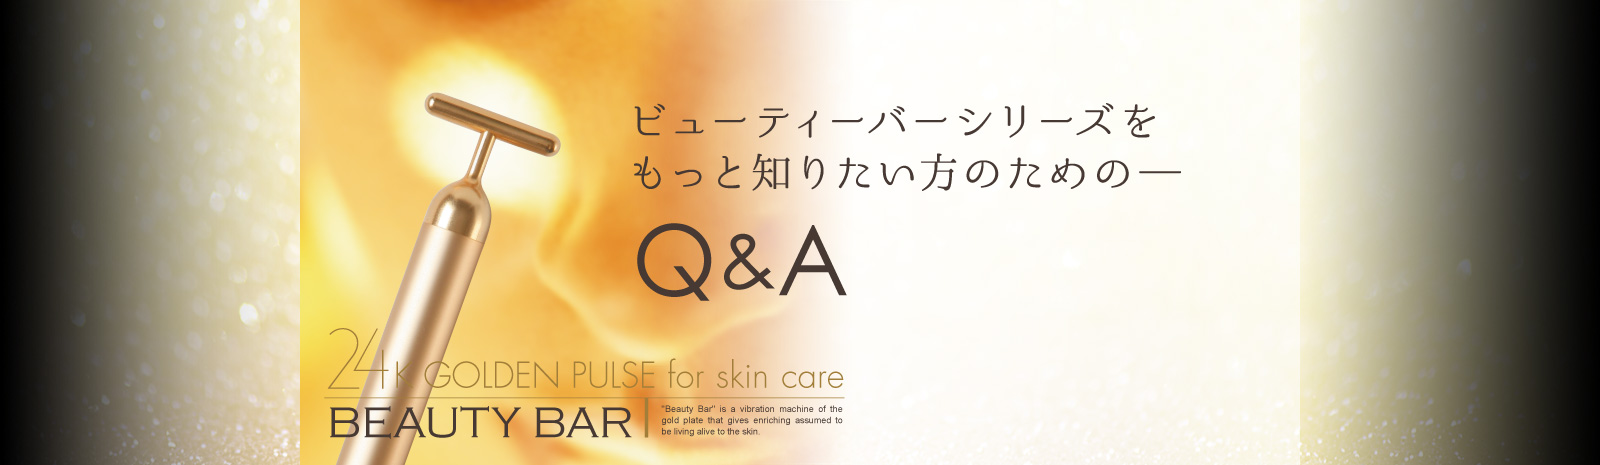 BEAUTY BARシリーズQ&A